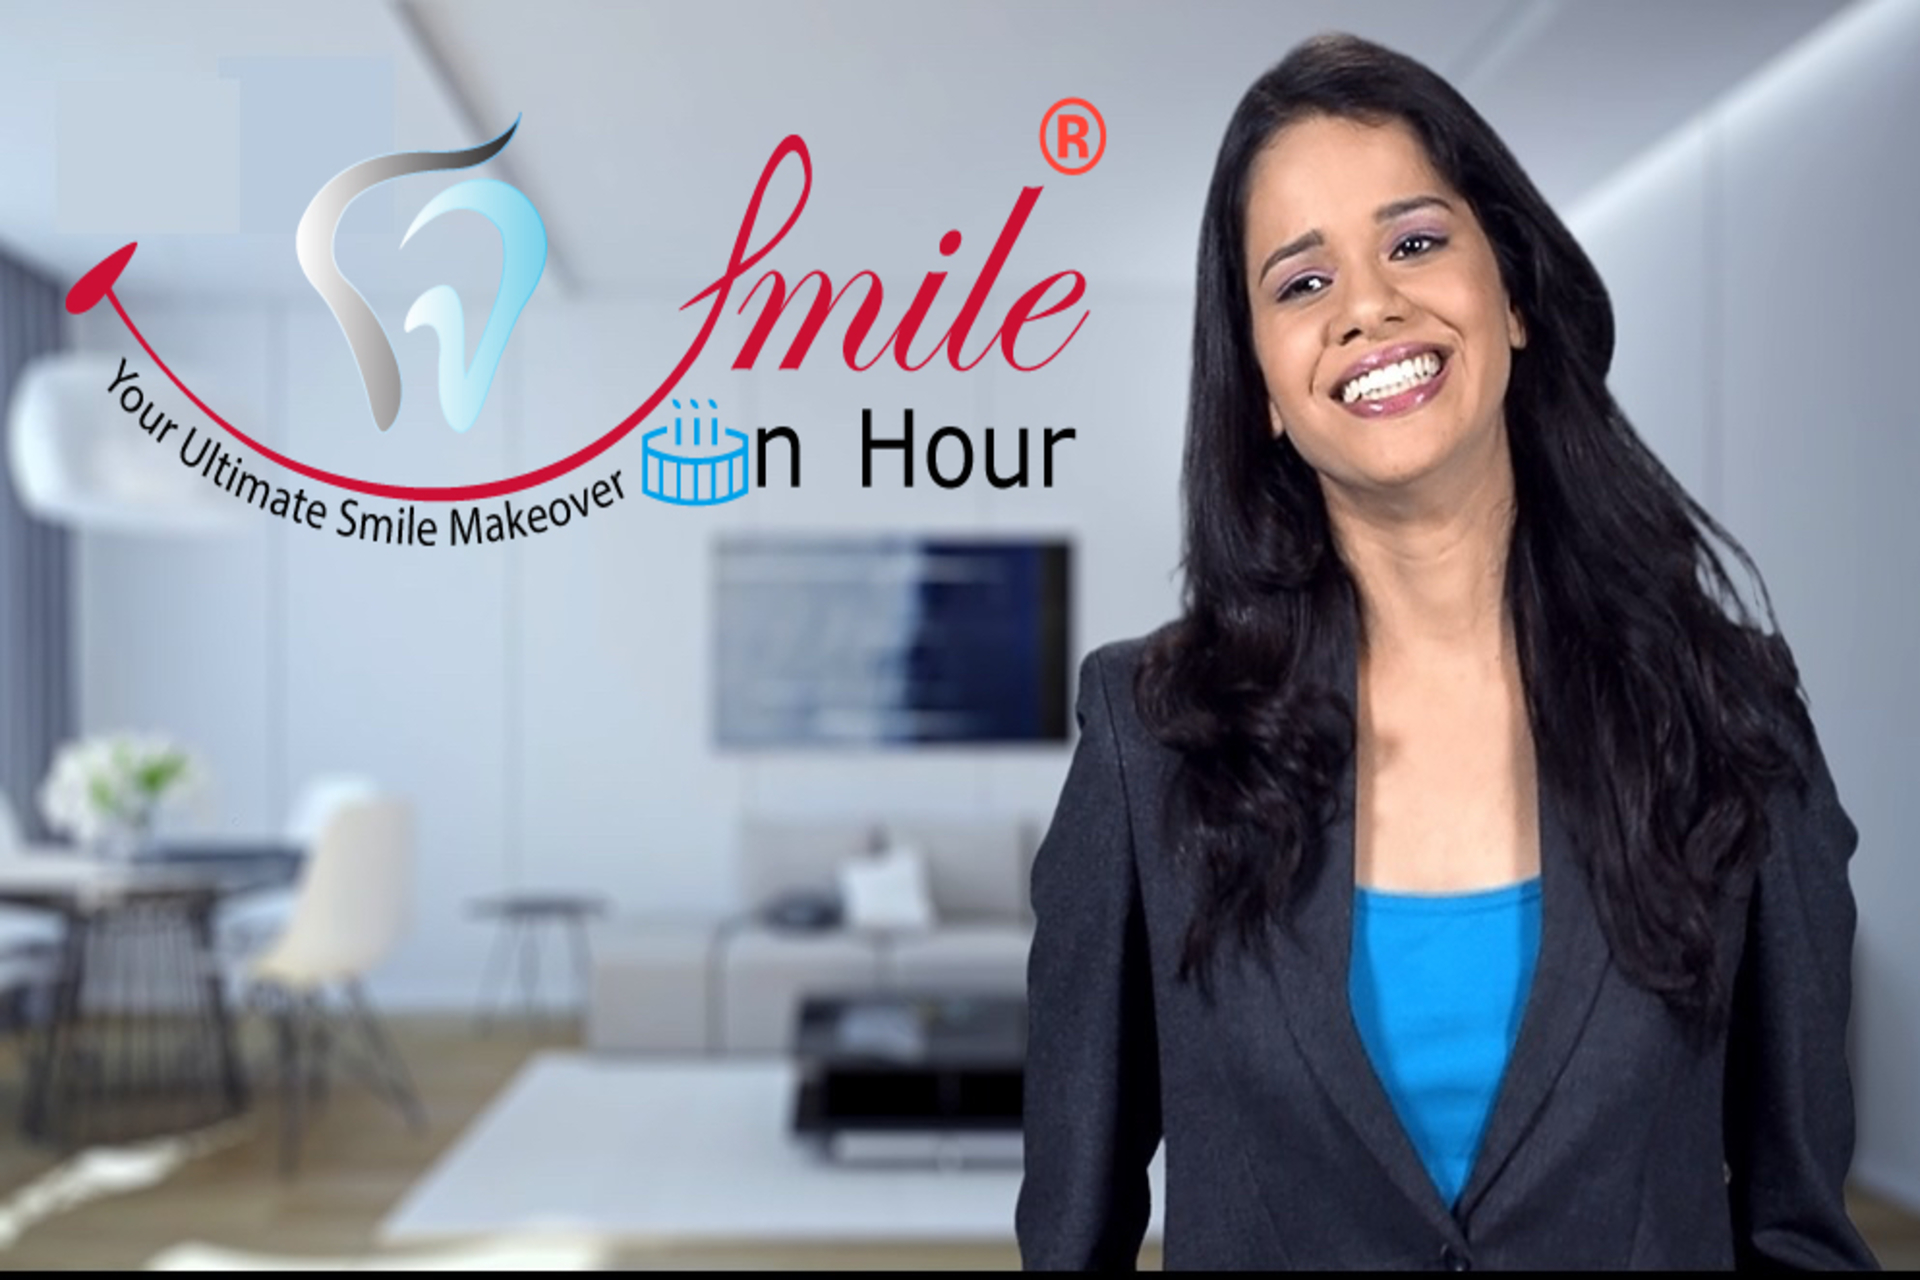 Smile-in-hour-best-dentist-hospital-top-dental-implant-clinic-in-Ahmedabad-Mumbai-Delhi-India-1920.jpg